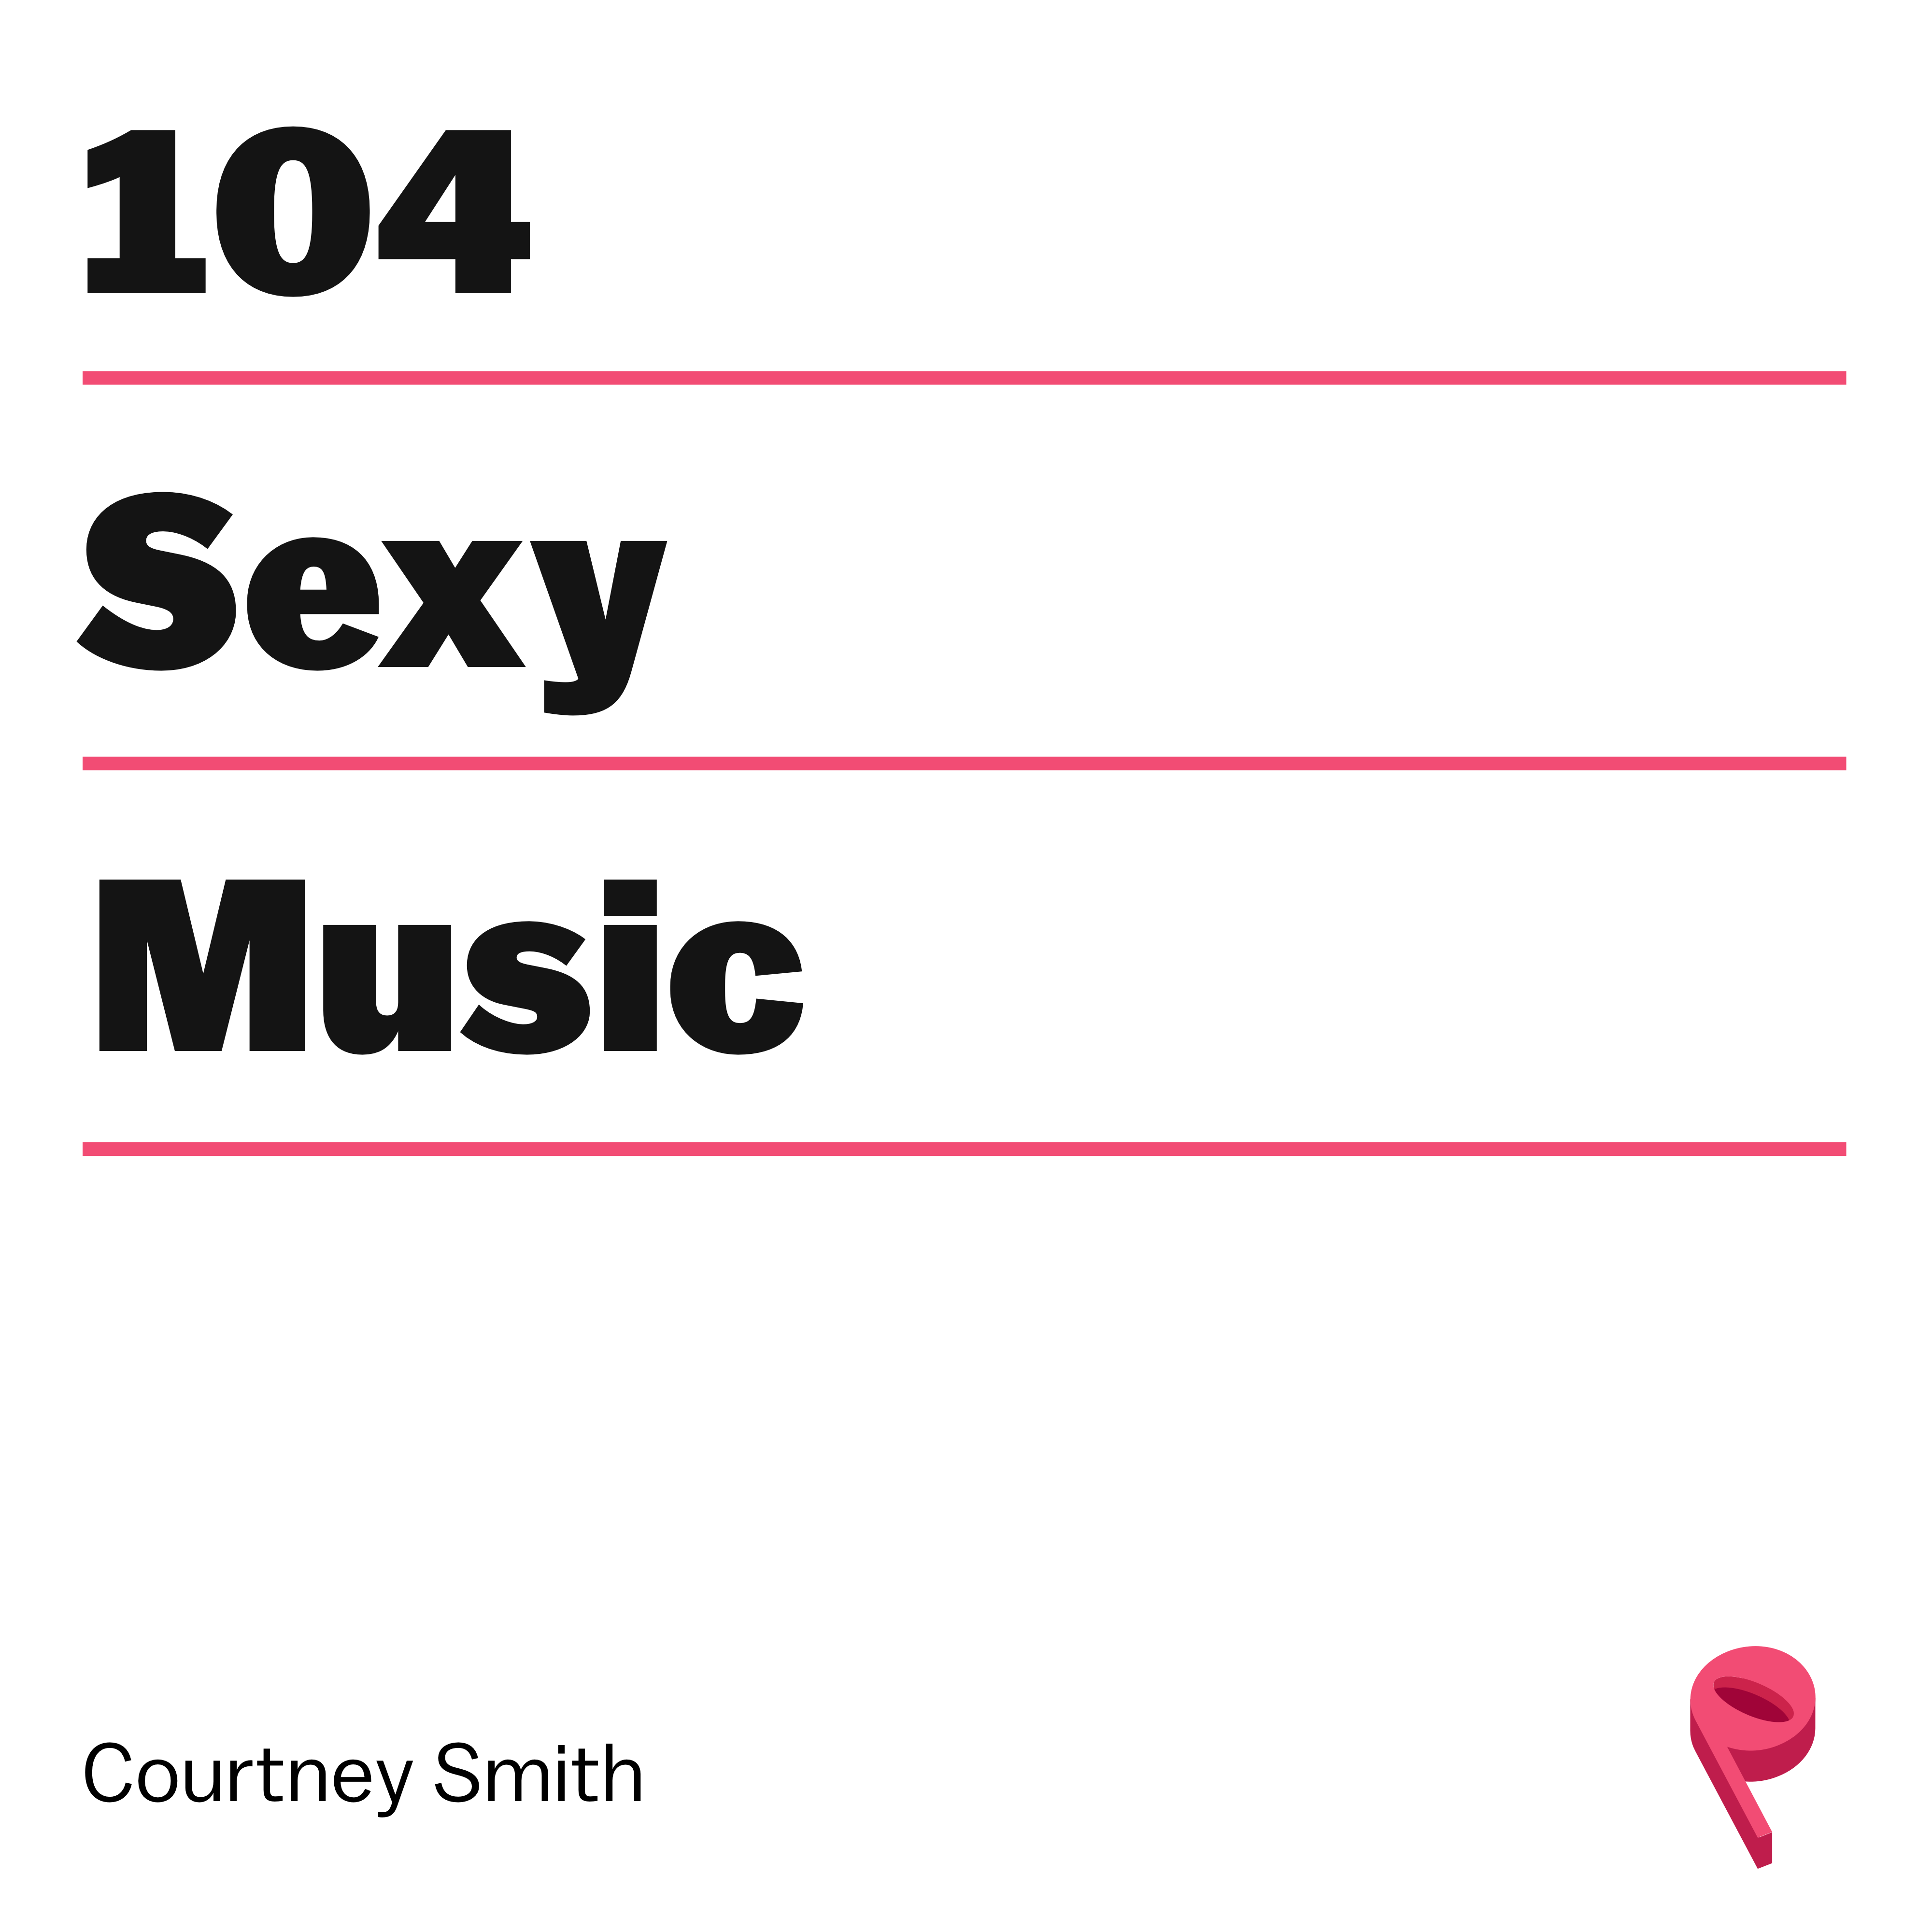 What Makes a Song Sexy?